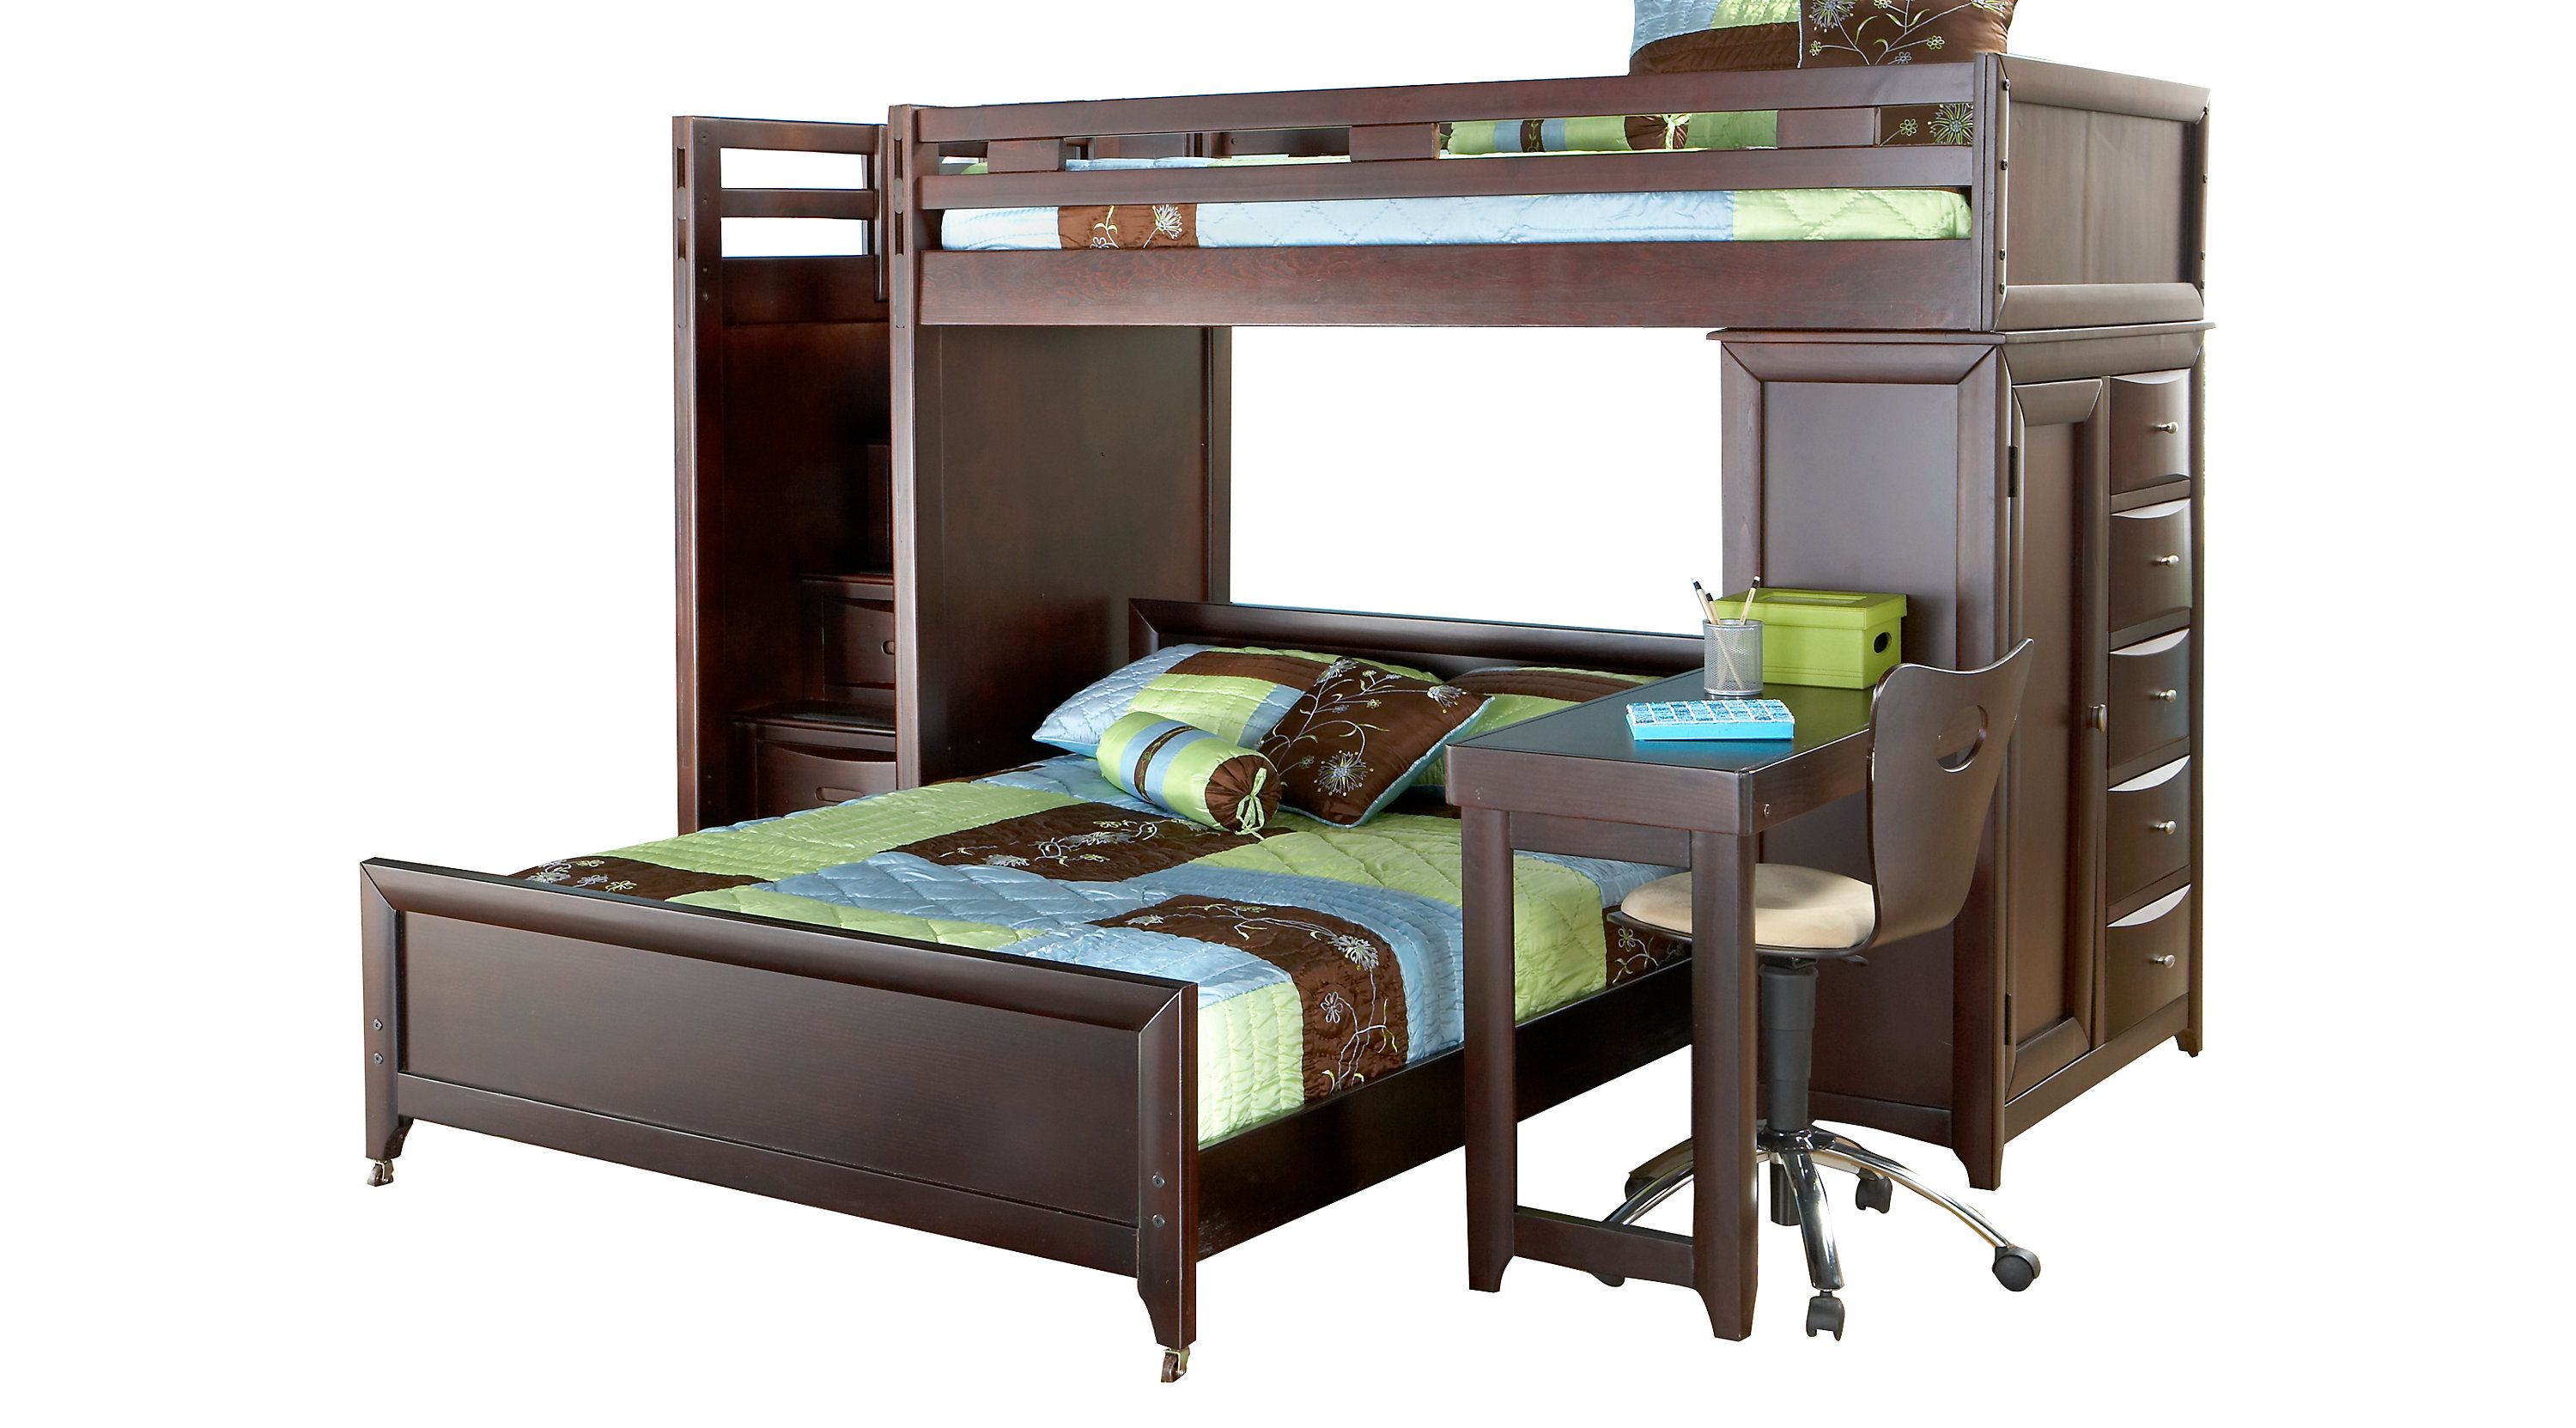 Bunk Bedroom Sets Rooms To Go Ivy League Cherry Twin Full Step Loft Bunk With Chest And Desk 3753280p Loft Bed For Boys Room Bunk Beds With Stairs Bunk Beds